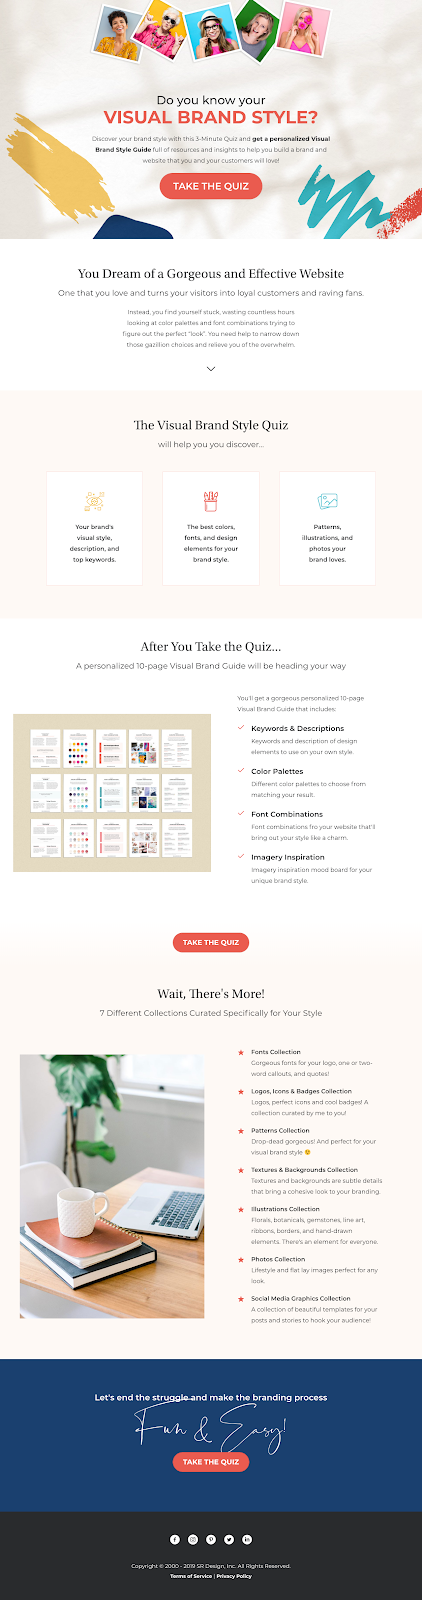 Do you know your visual brand style? landing page